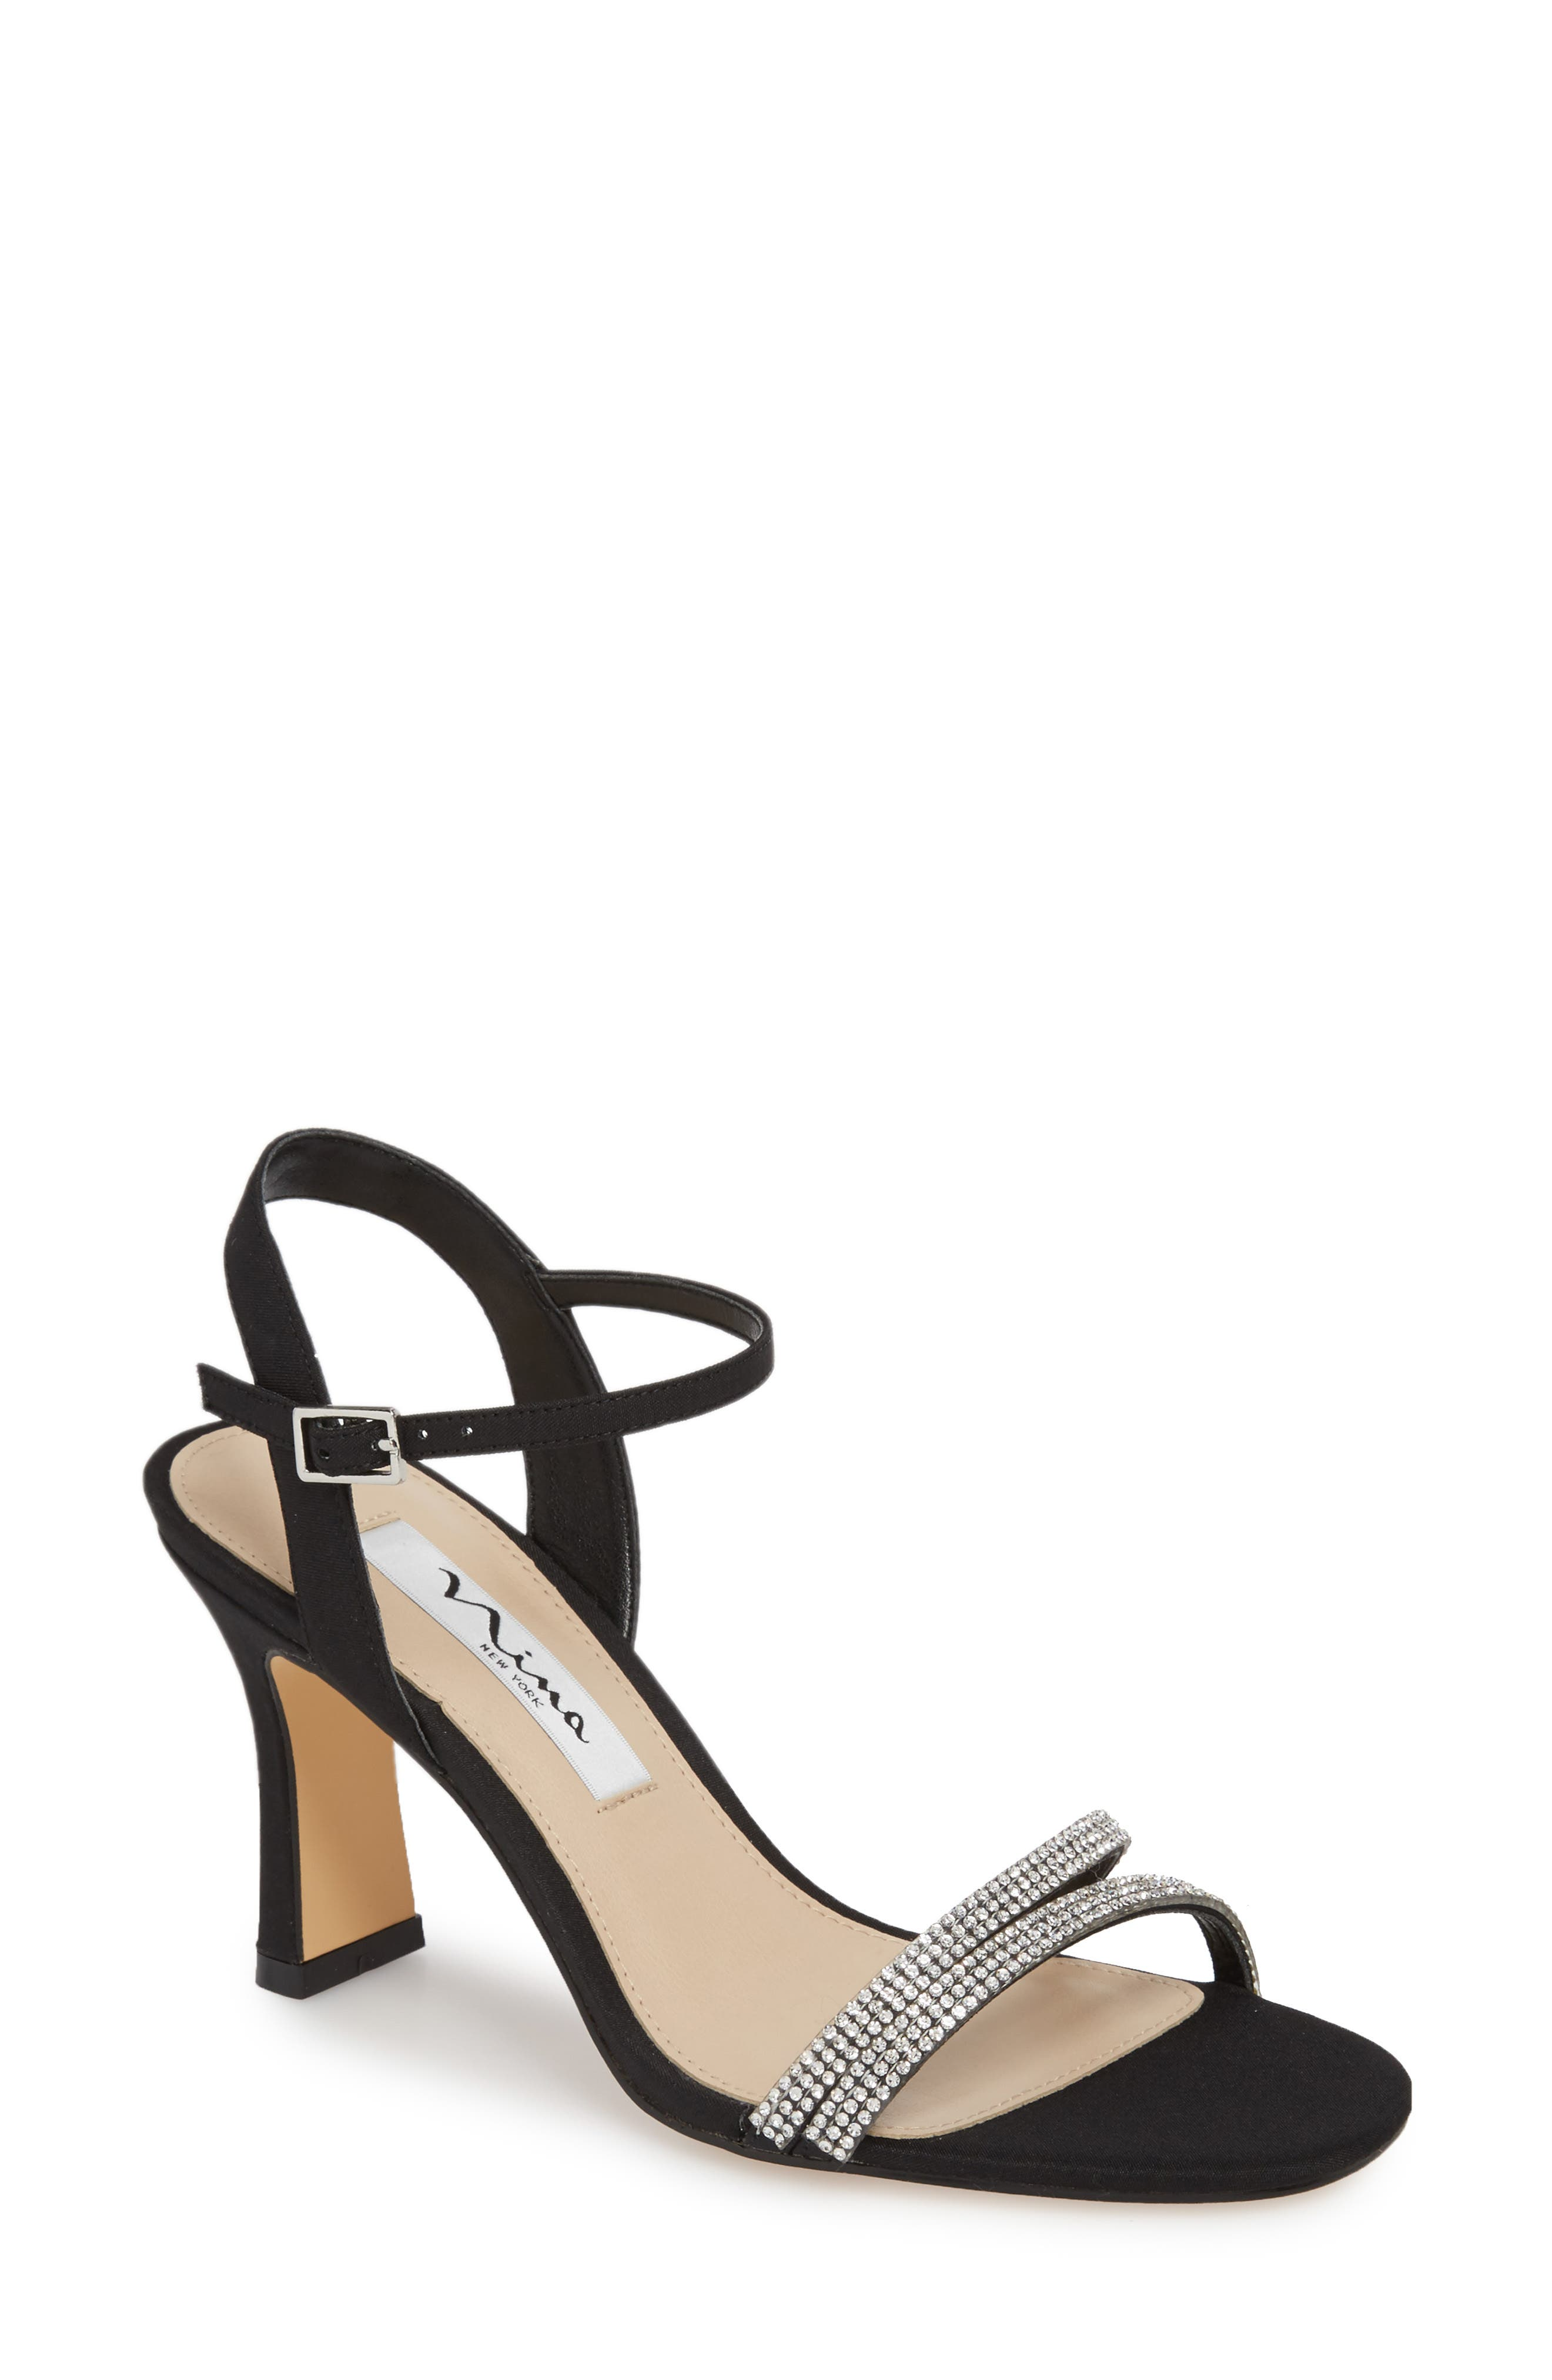 Avalon Ankle Strap Sandal,                         Main,                         color,